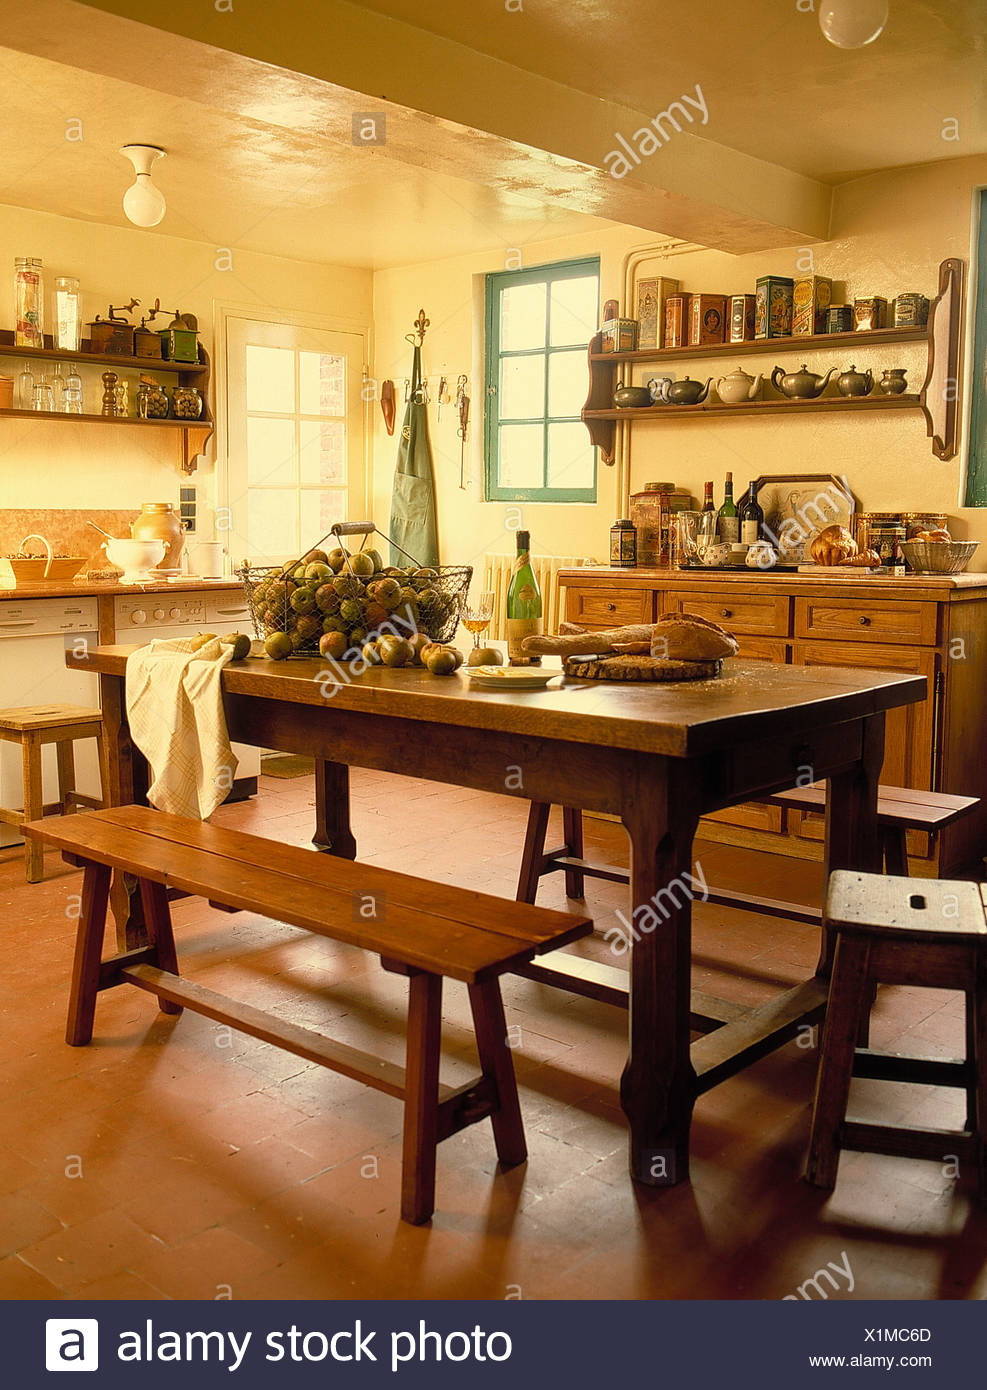 Superb Wooden Table And Benches In French Country Kitchen With Unemploymentrelief Wooden Chair Designs For Living Room Unemploymentrelieforg